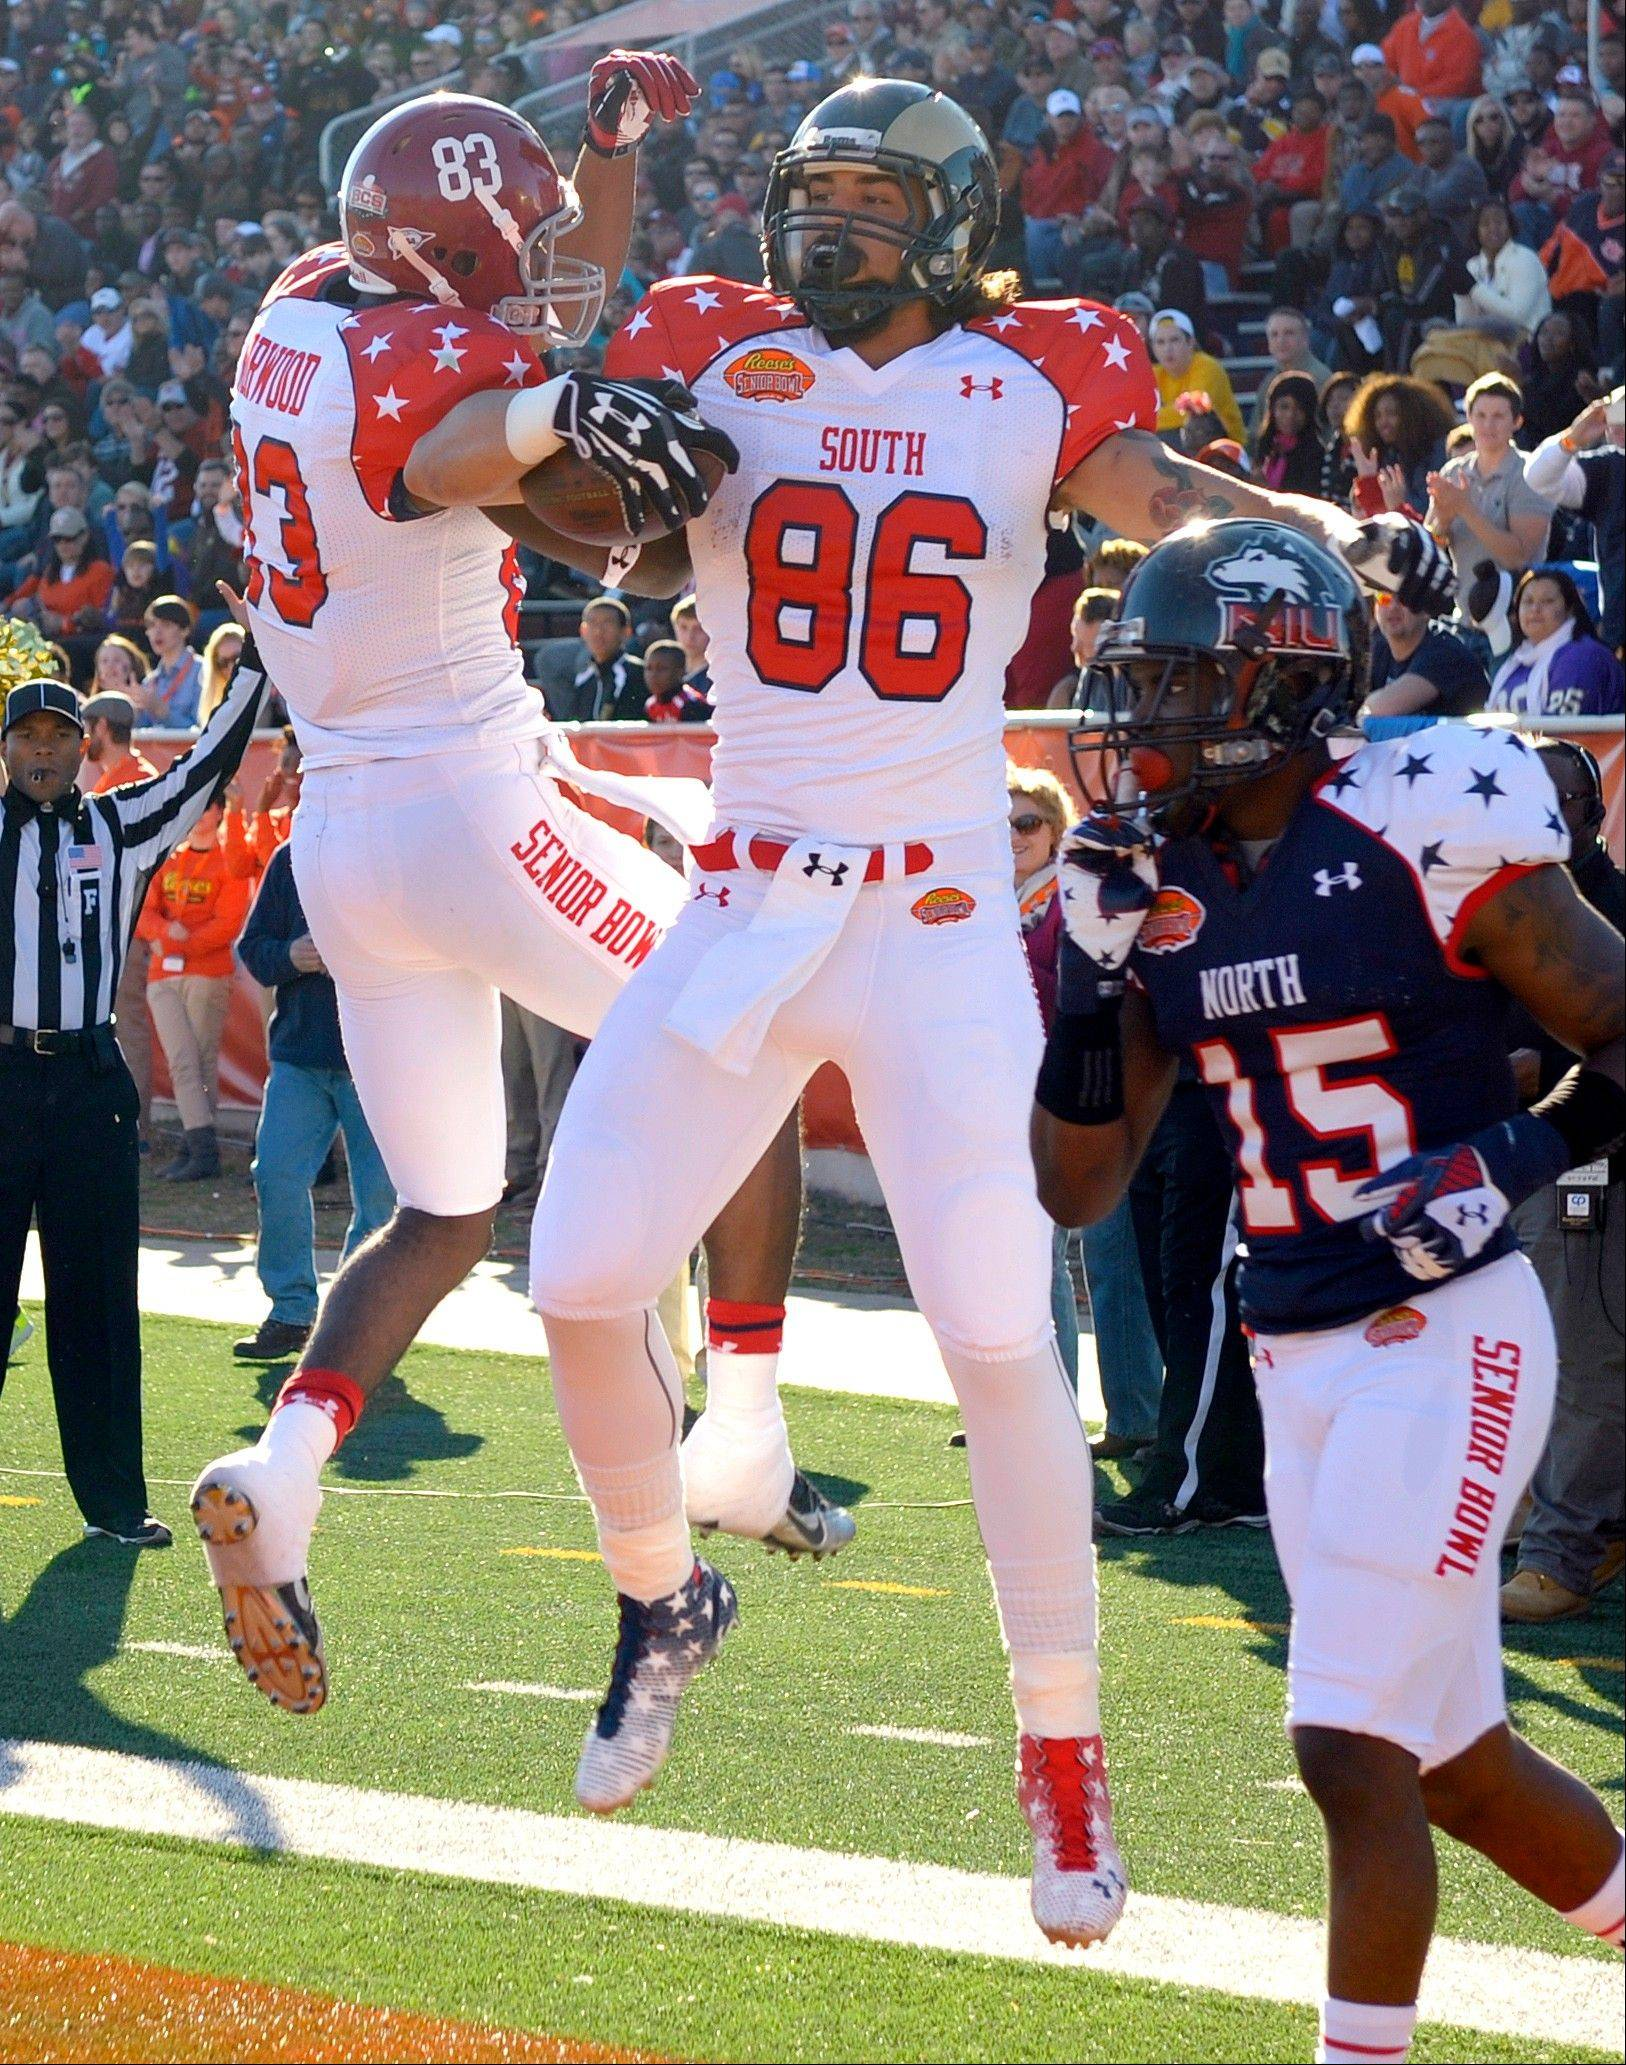 South wide receiver Kevin Norwood (83), of Alabama, celebrates with tight end Crockett Gilmore (86), of Colorado State, following Gilmore's touchdown catch during the first quarter of the Senior Bowl NCAA college football game on Saturday, Jan. 25, 2014, in Mobile, Ala. At right is North safety Jimmie Ward (15), of Northern Illinois.